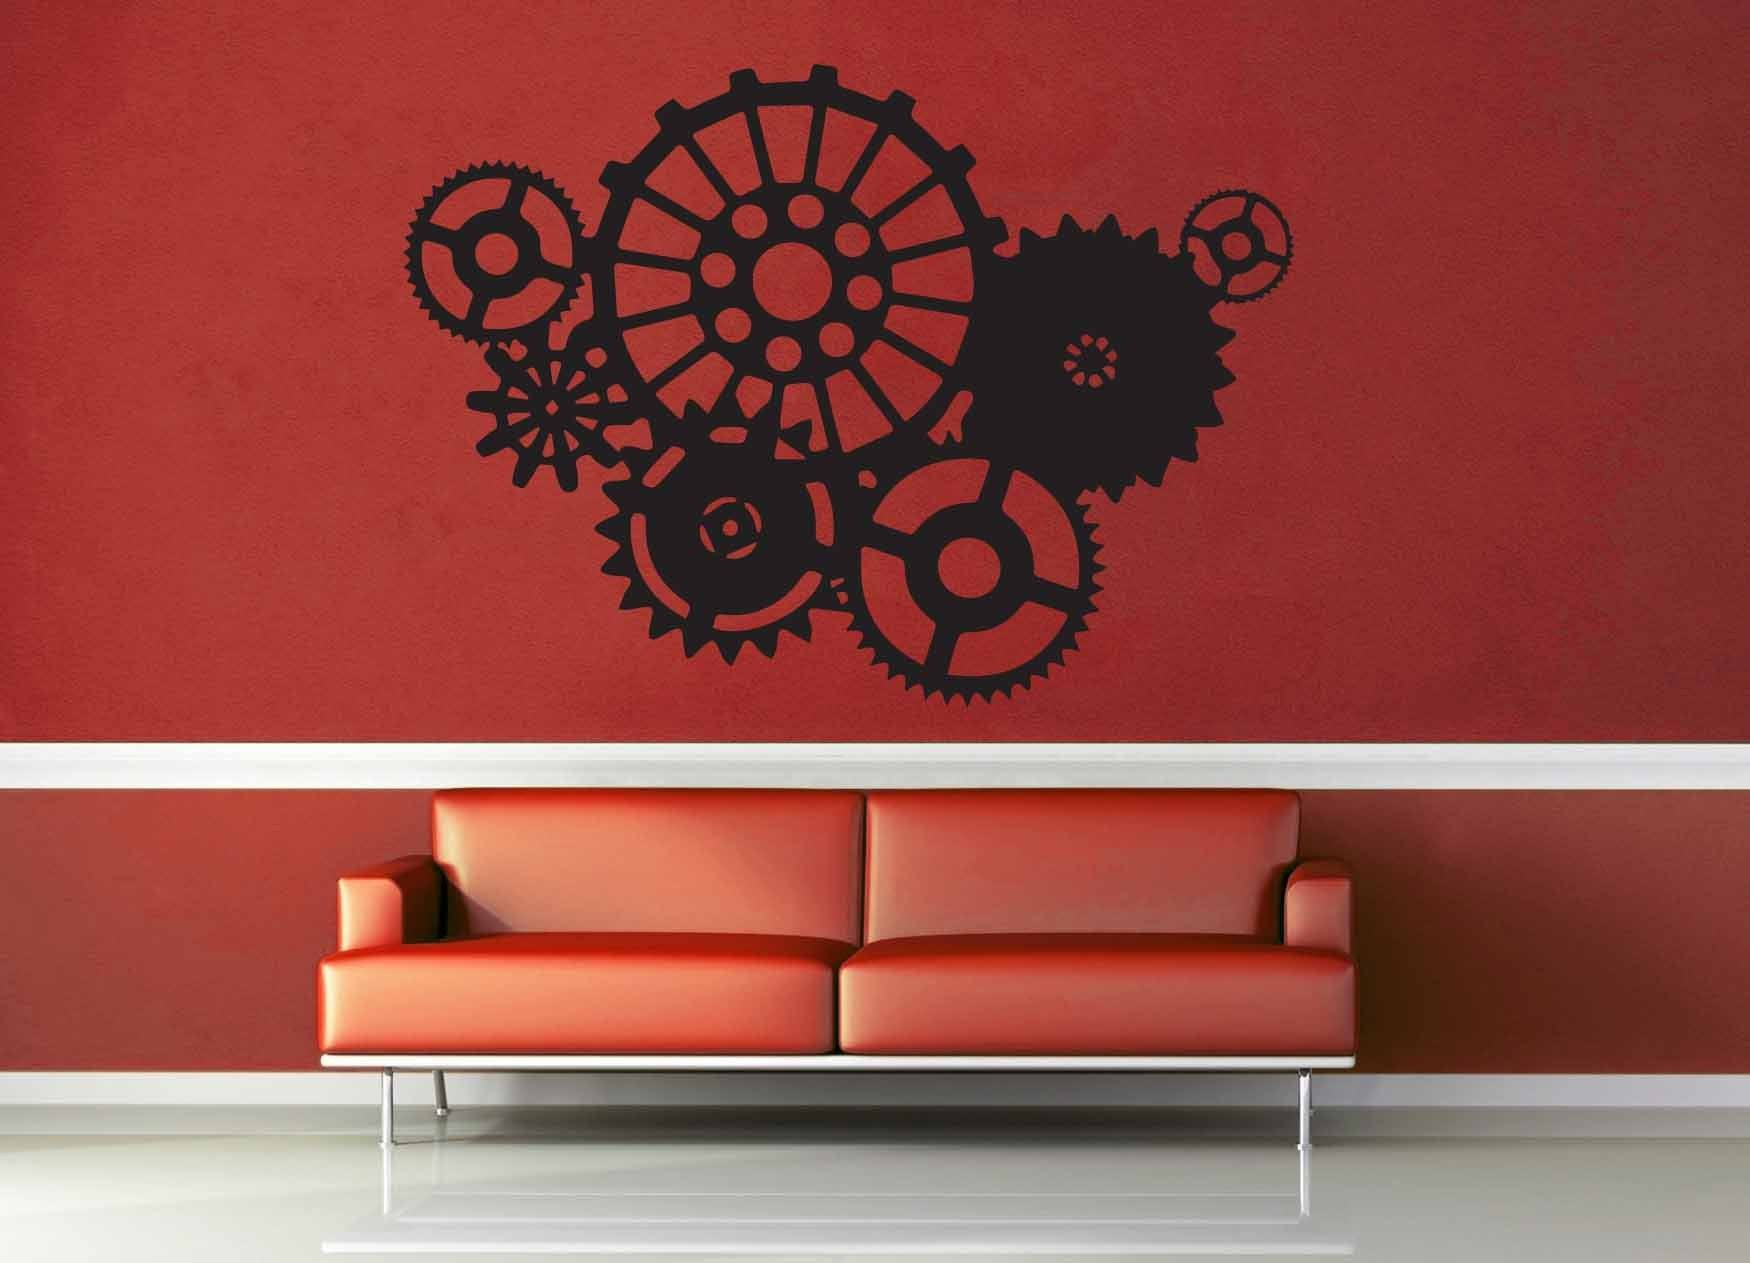 Clockwork Silhouette - Steampunk - Wall Decal